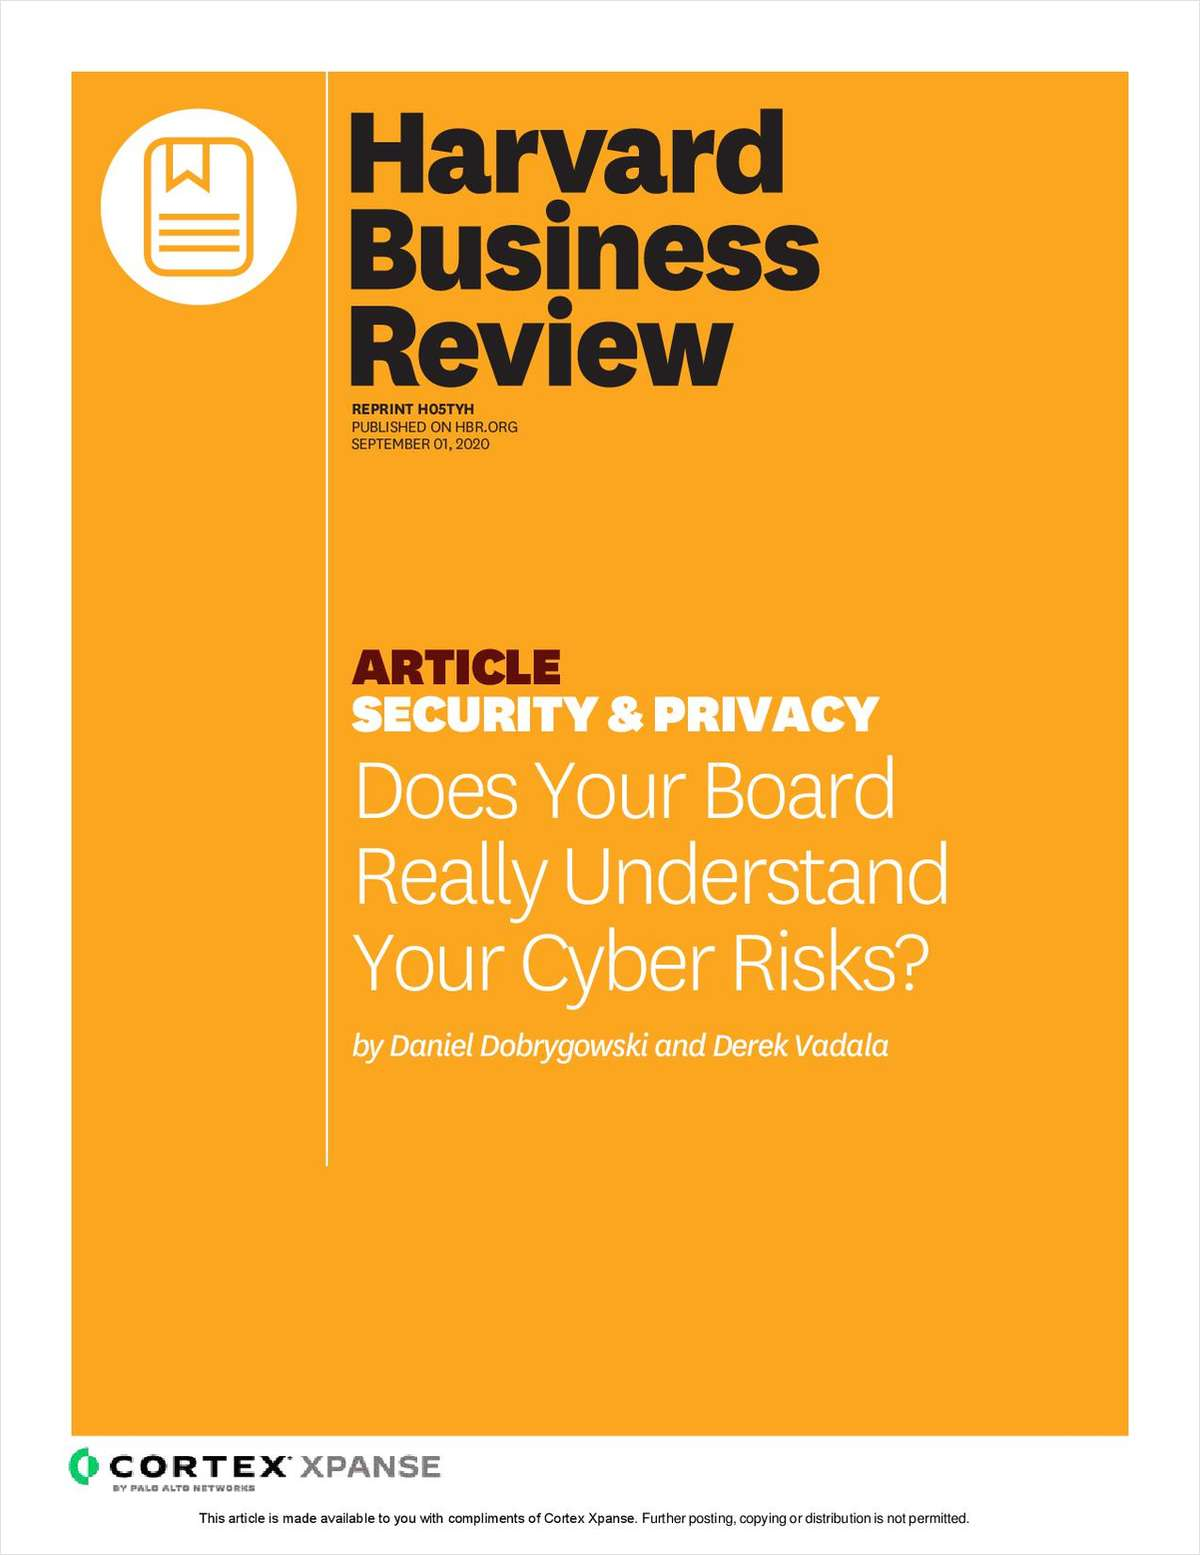 Does Your Board Really Understand Your Cyber Risks?